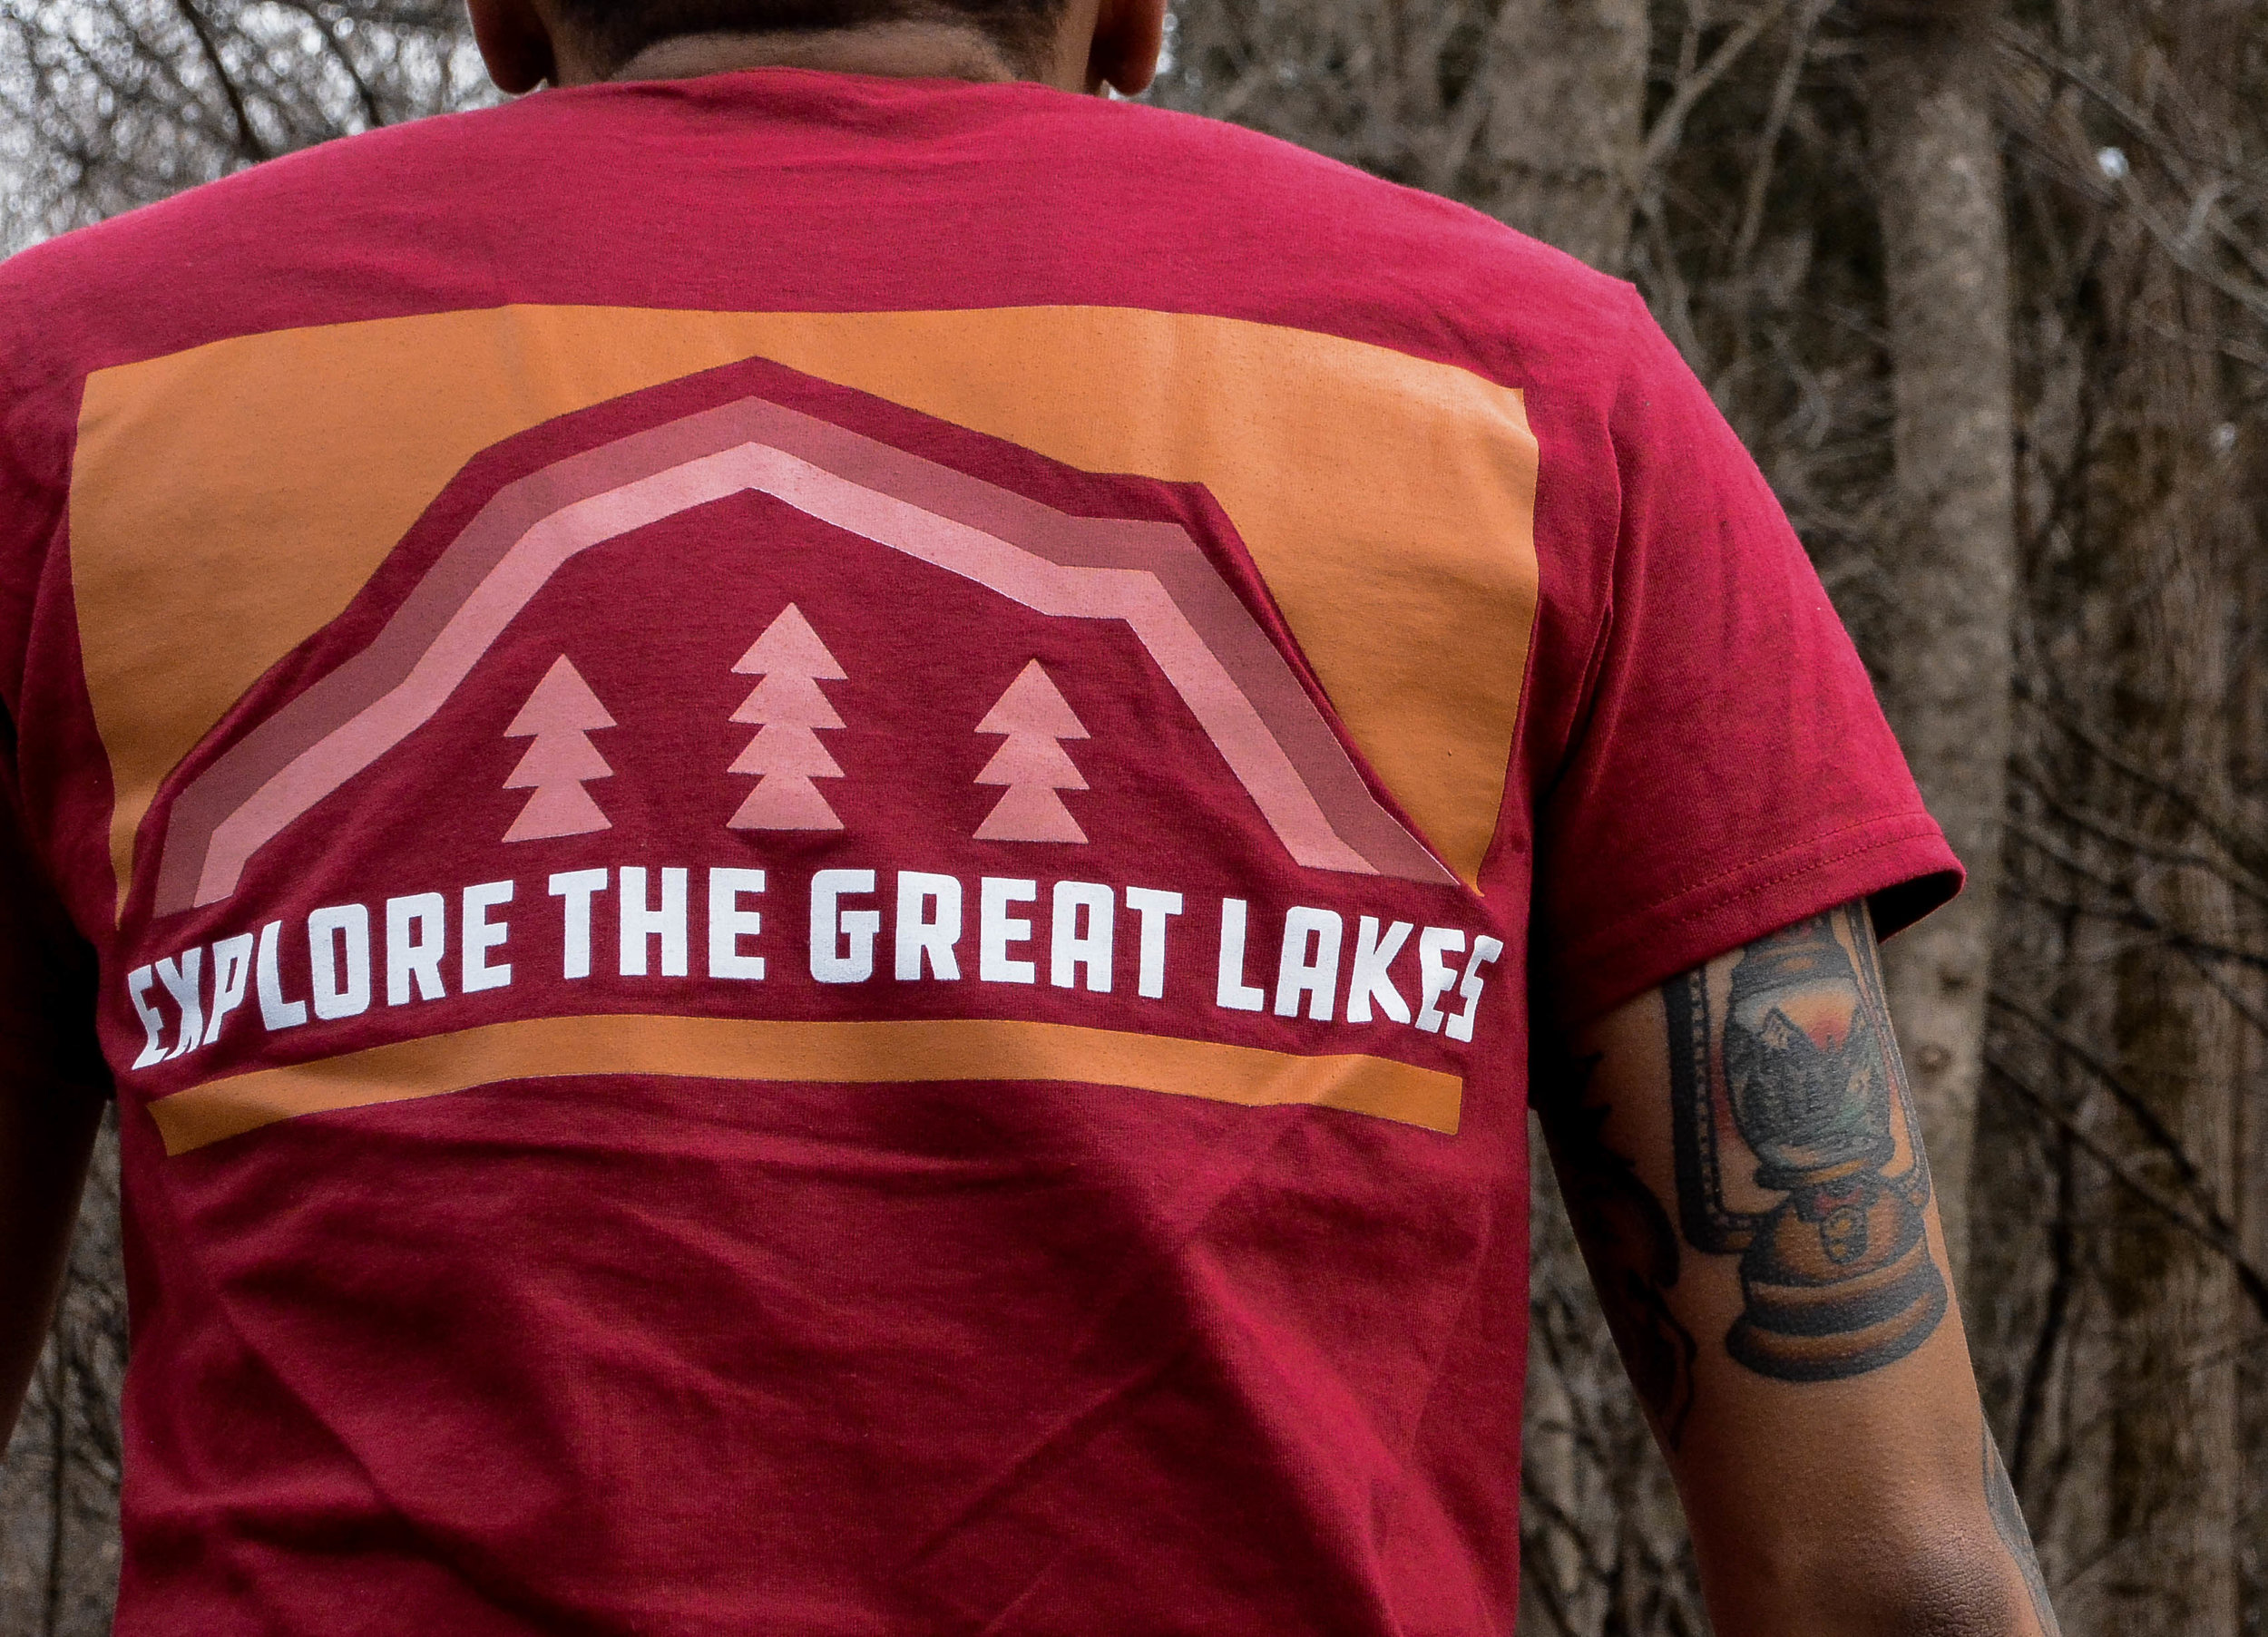 our first shirts are here - In the spirit of our favorite pastime, our new Explore the Great Lakes shirt pays homage to that. Designed to be bold, just like Michigan's rolling dunes, clear lakes, and immense forests in mind.$15.00